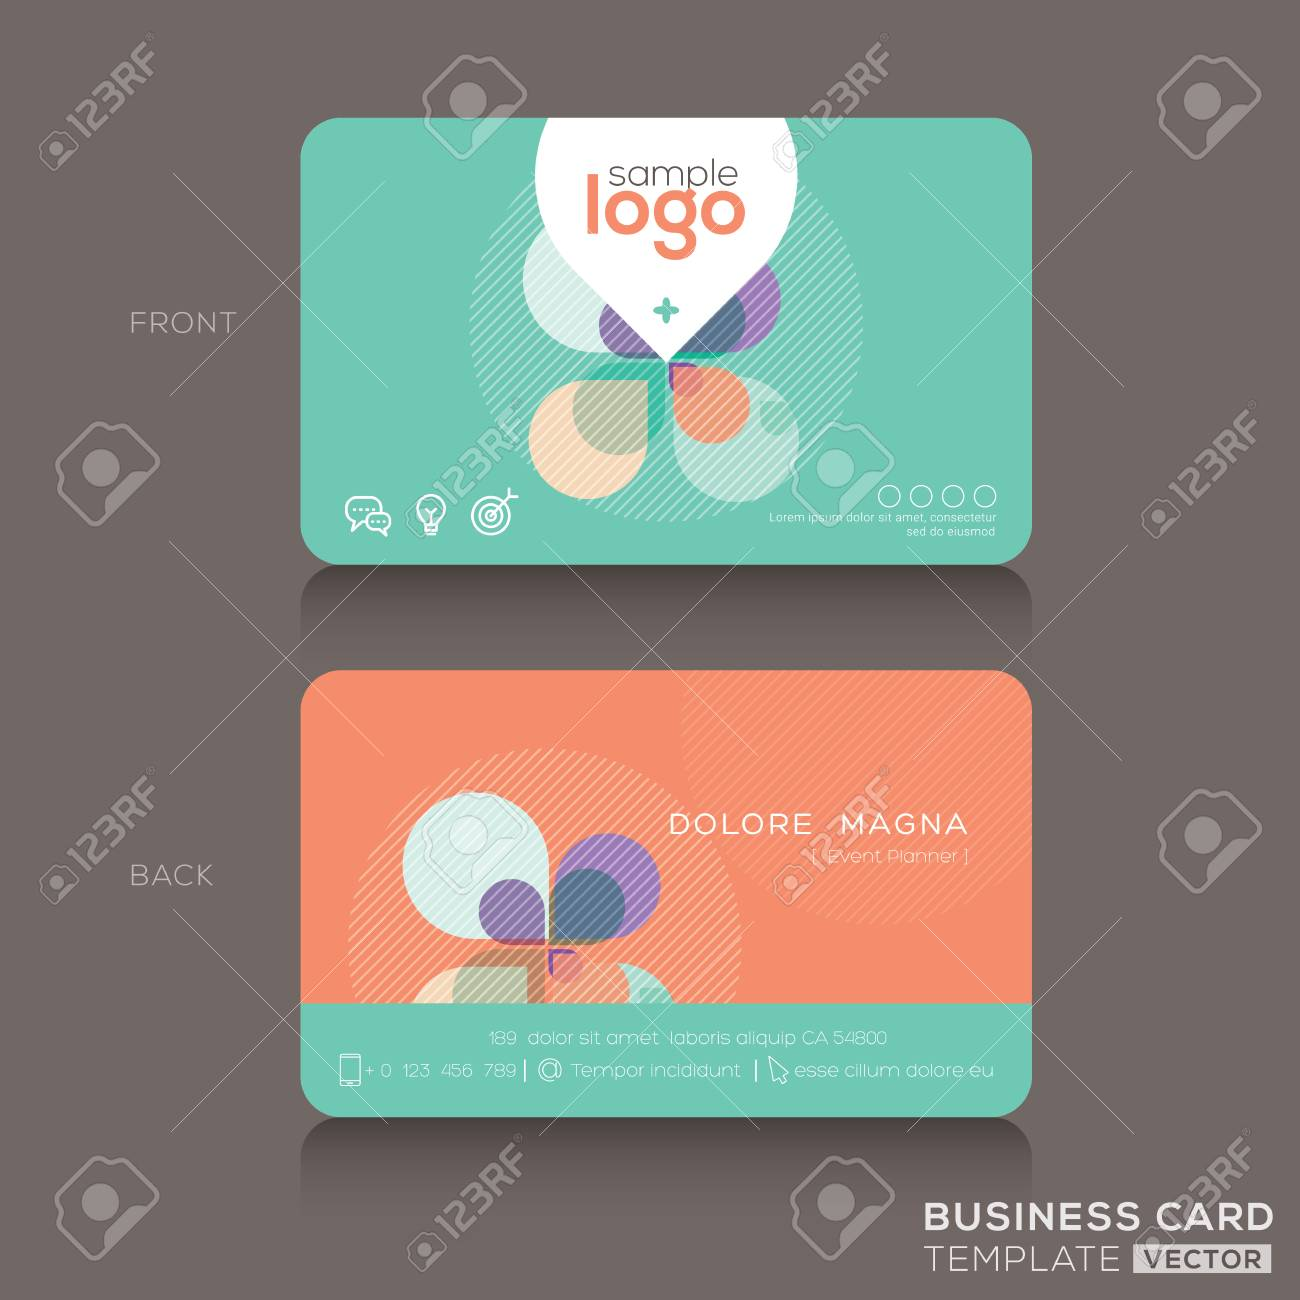 Modern Trendy Colorful Business Card Design Template Royalty Free ...